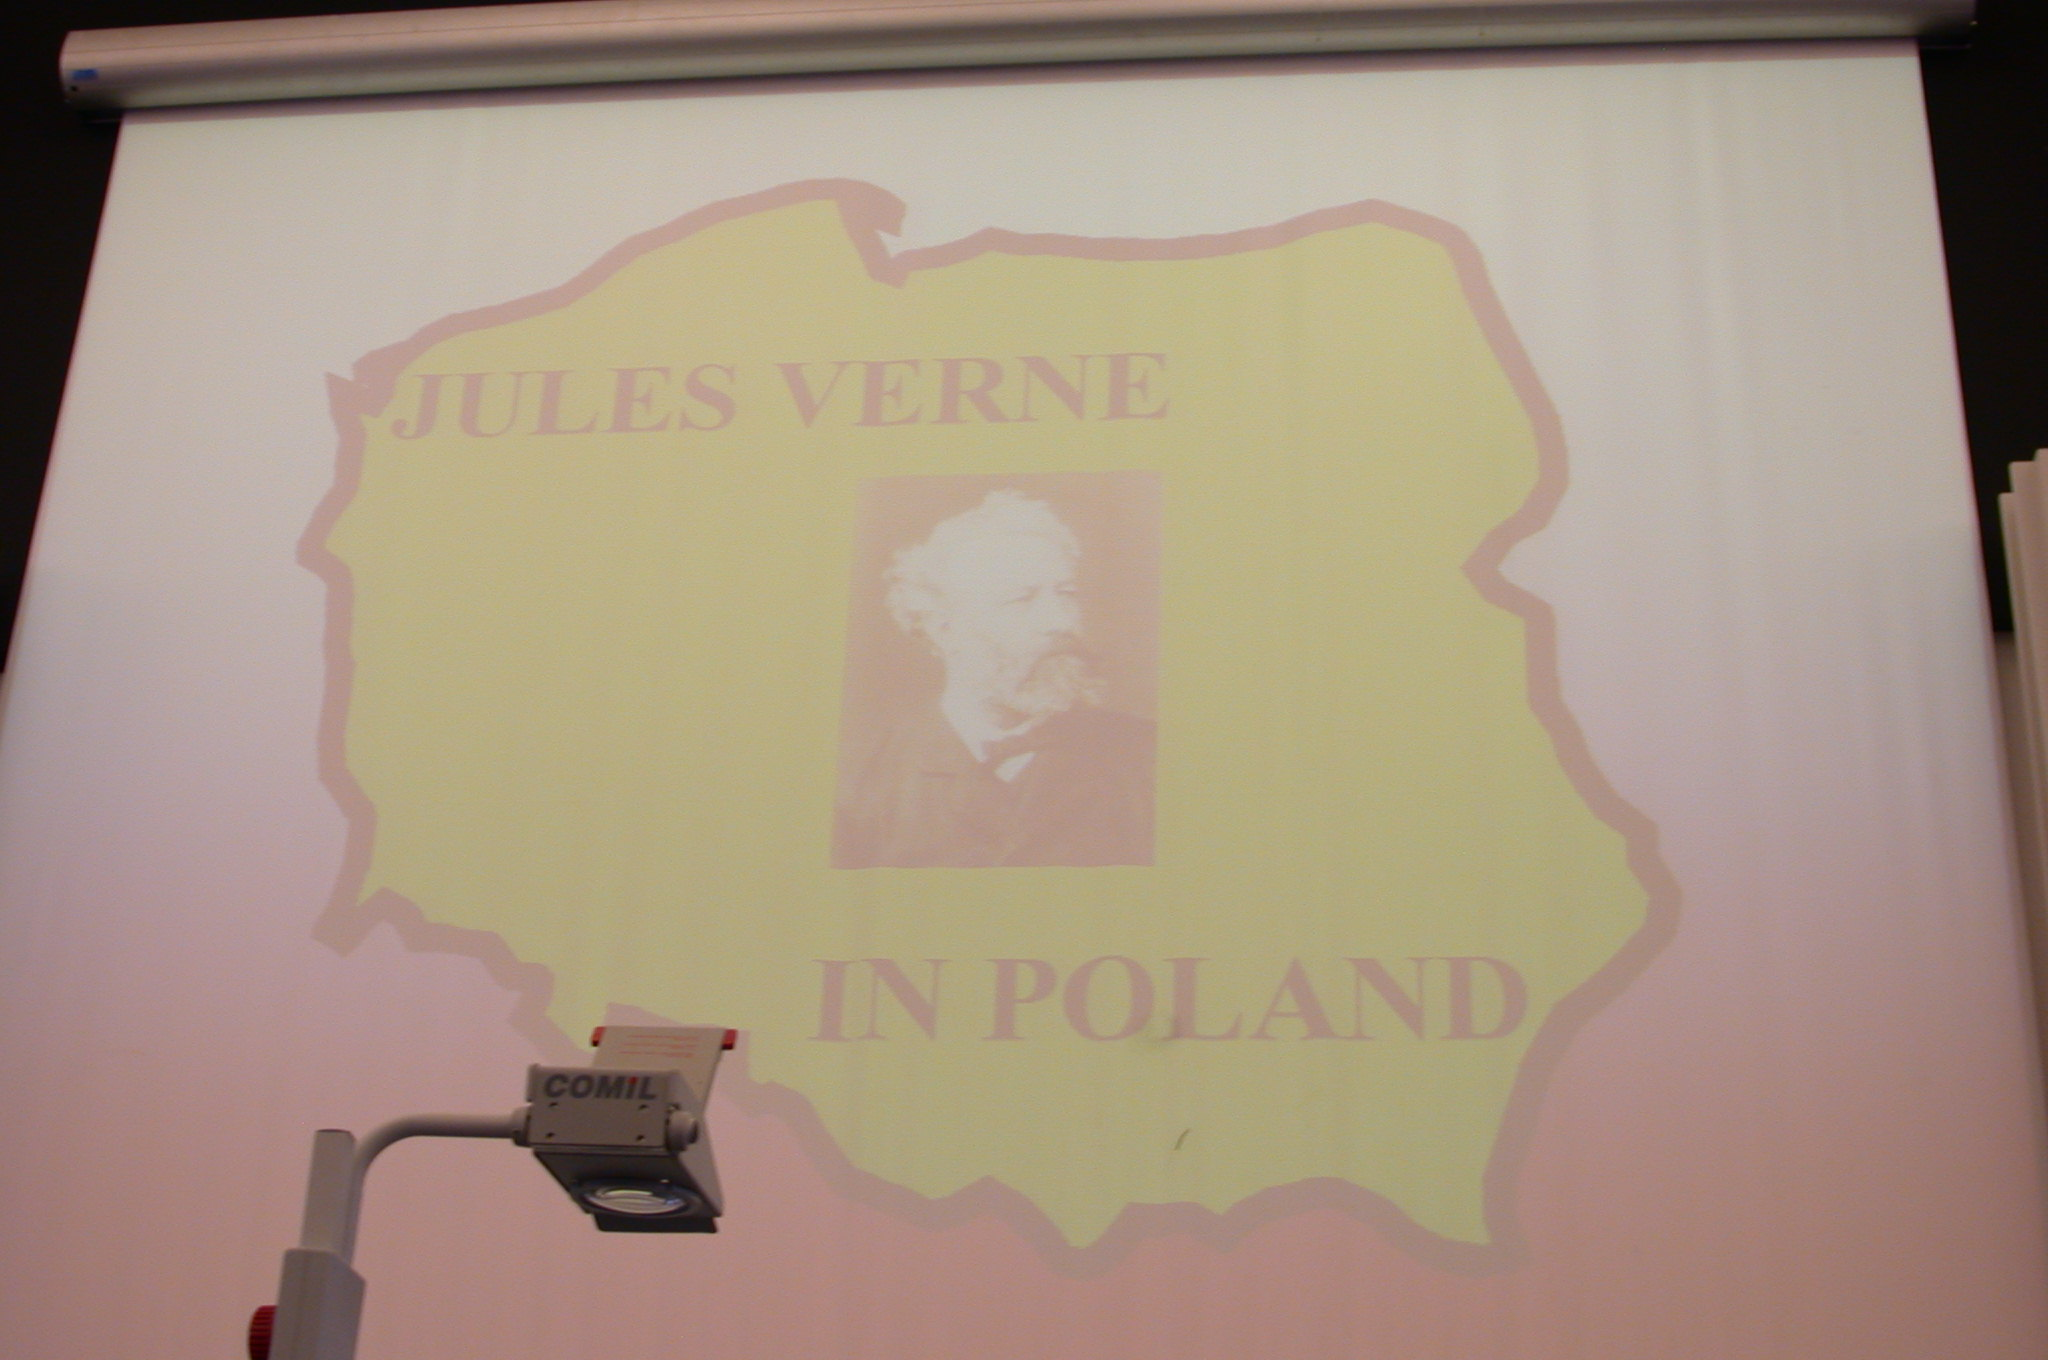 DSCN0037.jpg - speaking about Jules Verne and Poland.